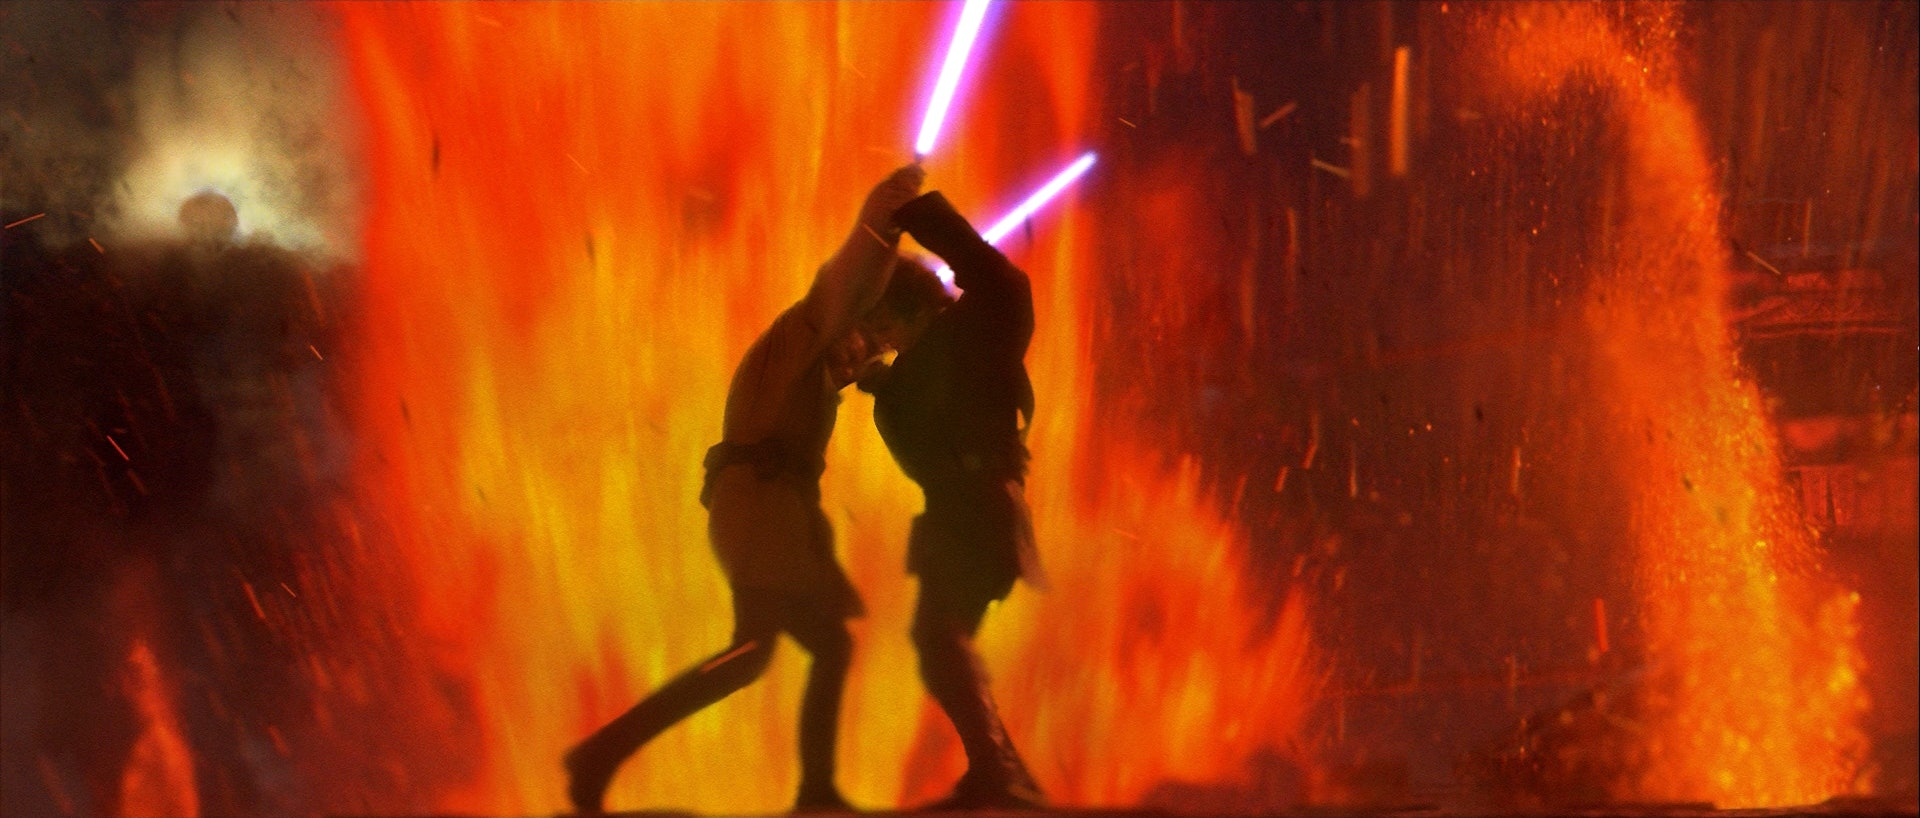 Anakin and Obi-Wan on Mustafar